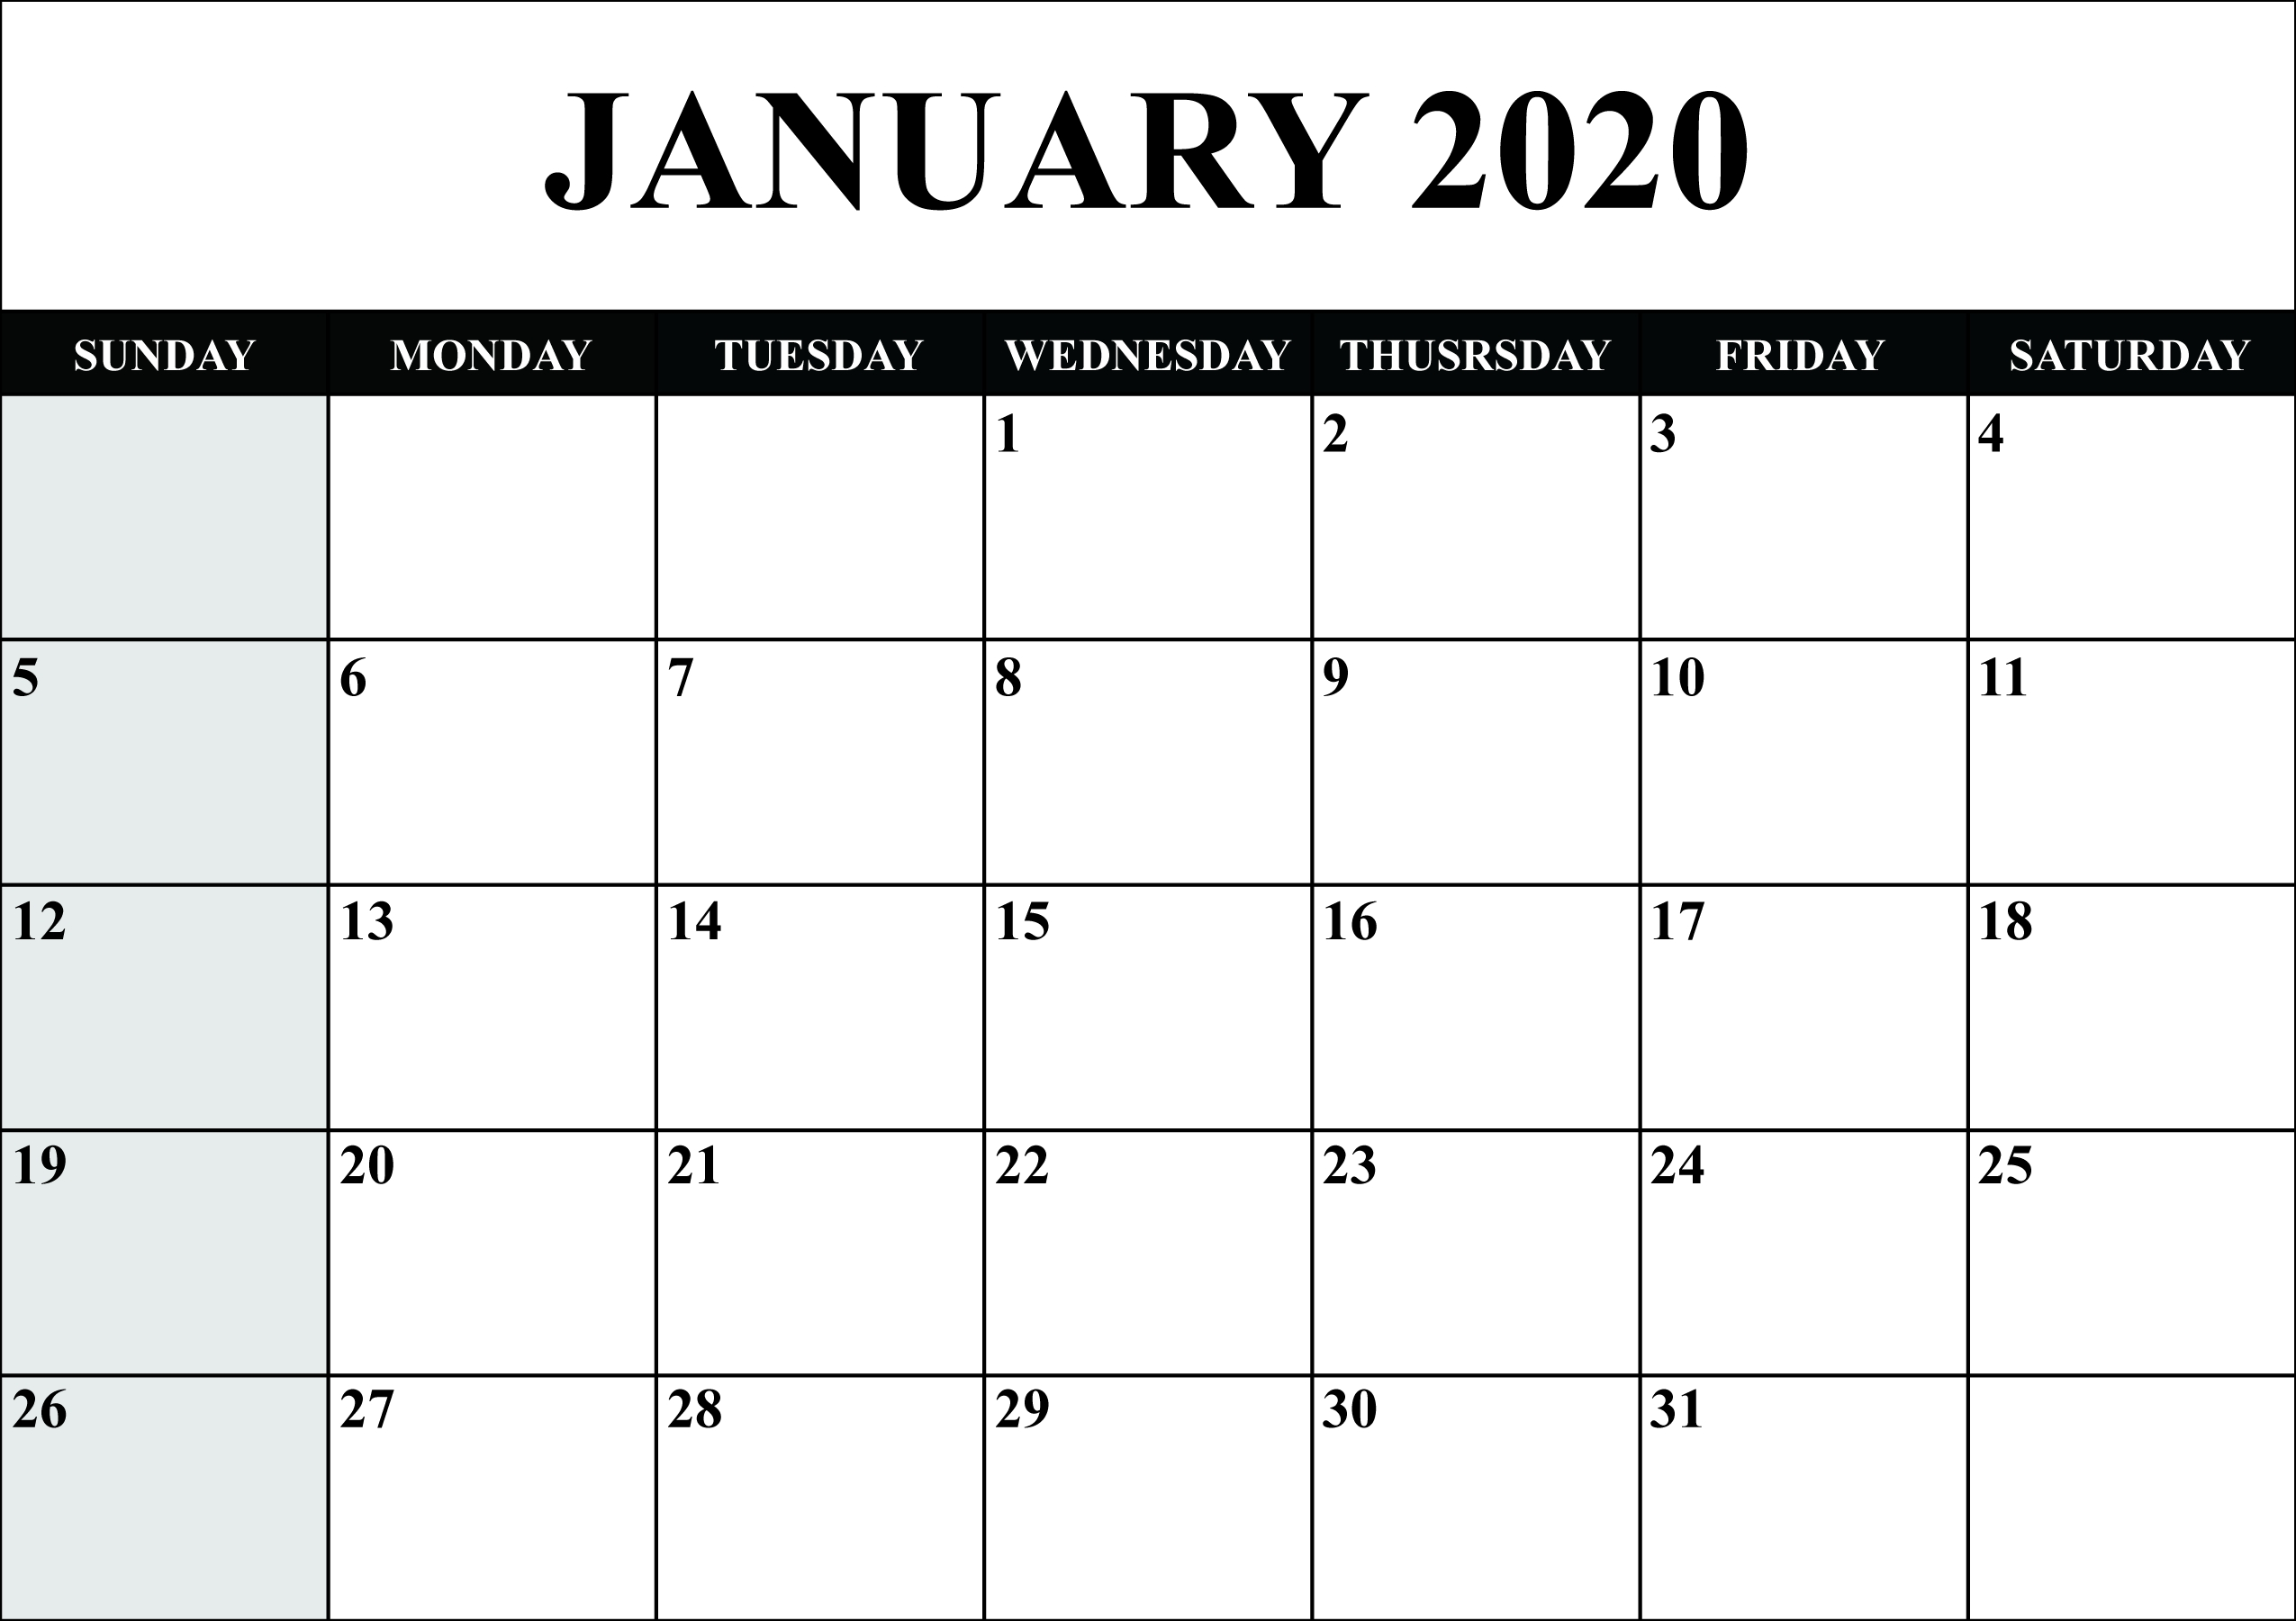 Free Blank January 2020 Calendar Printable In Pdf, Word  Editable Baptist Calendar 2020 Printable